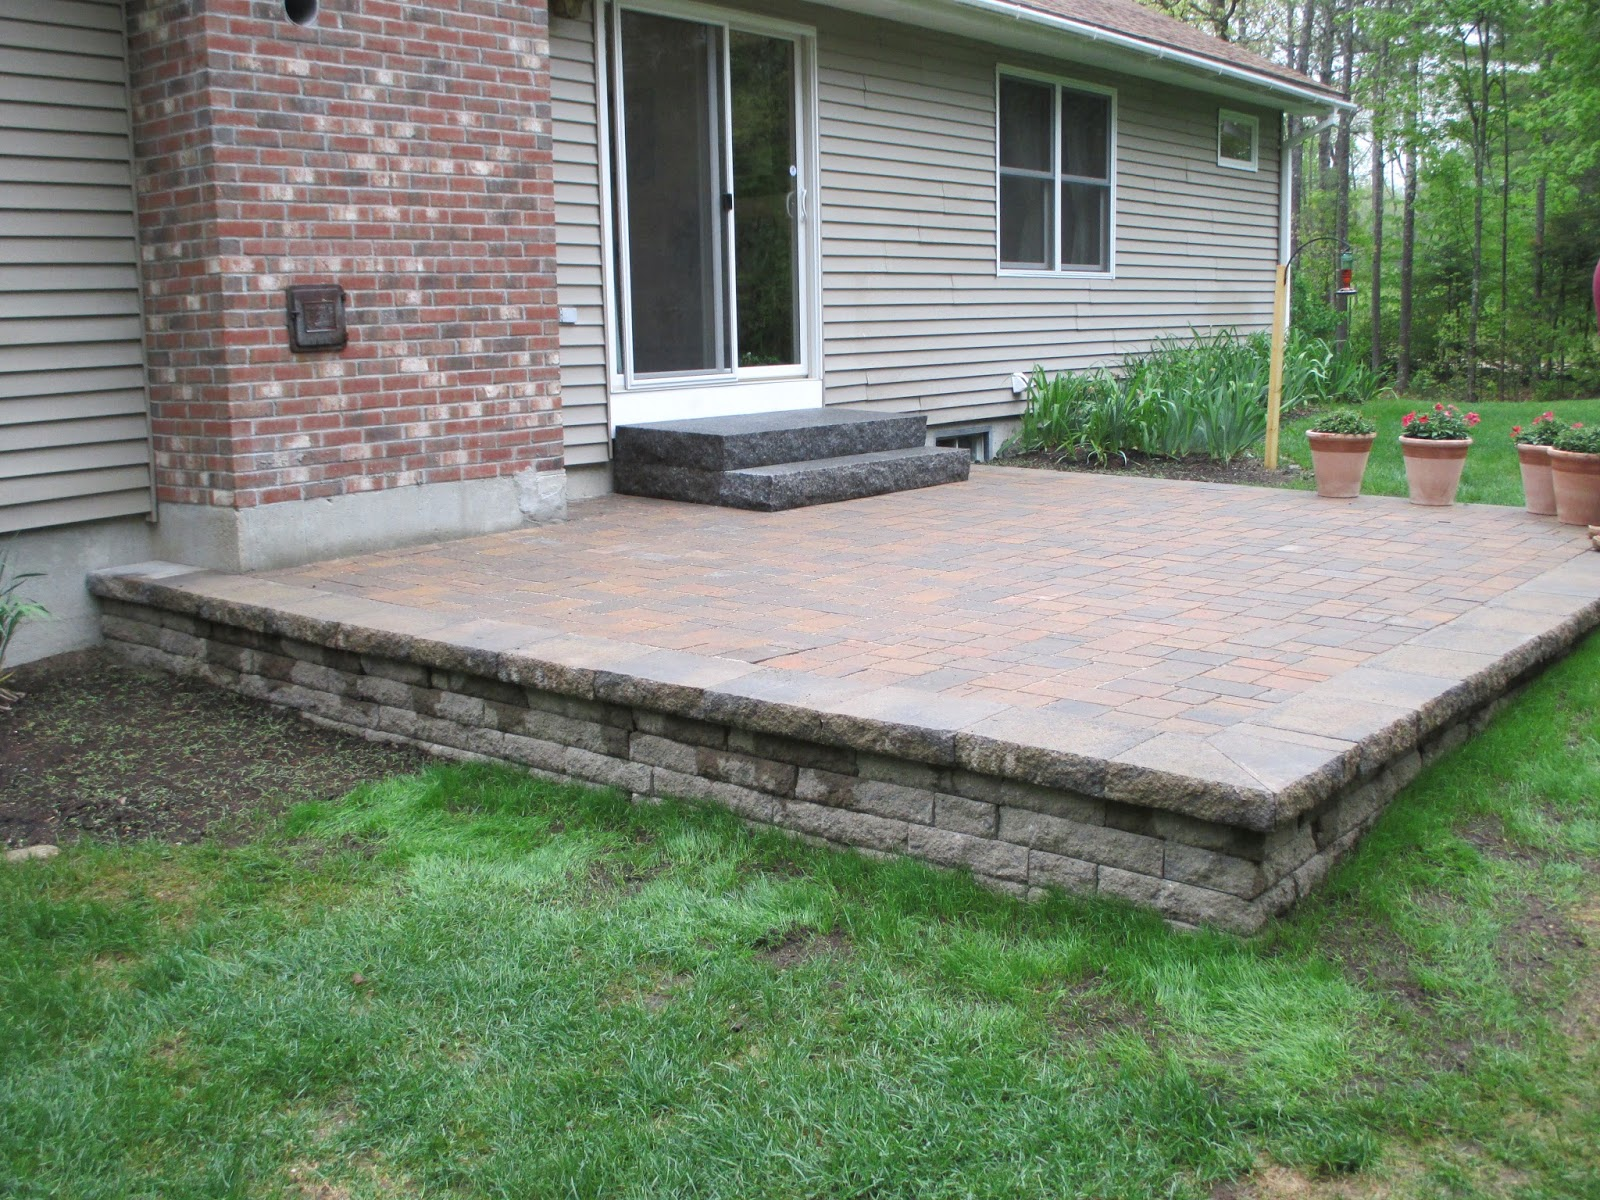 Raised Paver Patios Designed and Installed in Meredith New H&shireu0027s Lakes Region. Raised Patios are great for yards that are uneven Natures Elite ... & Natures Elite Landscaping: Raised Paver Patios Meredith New Hampshire